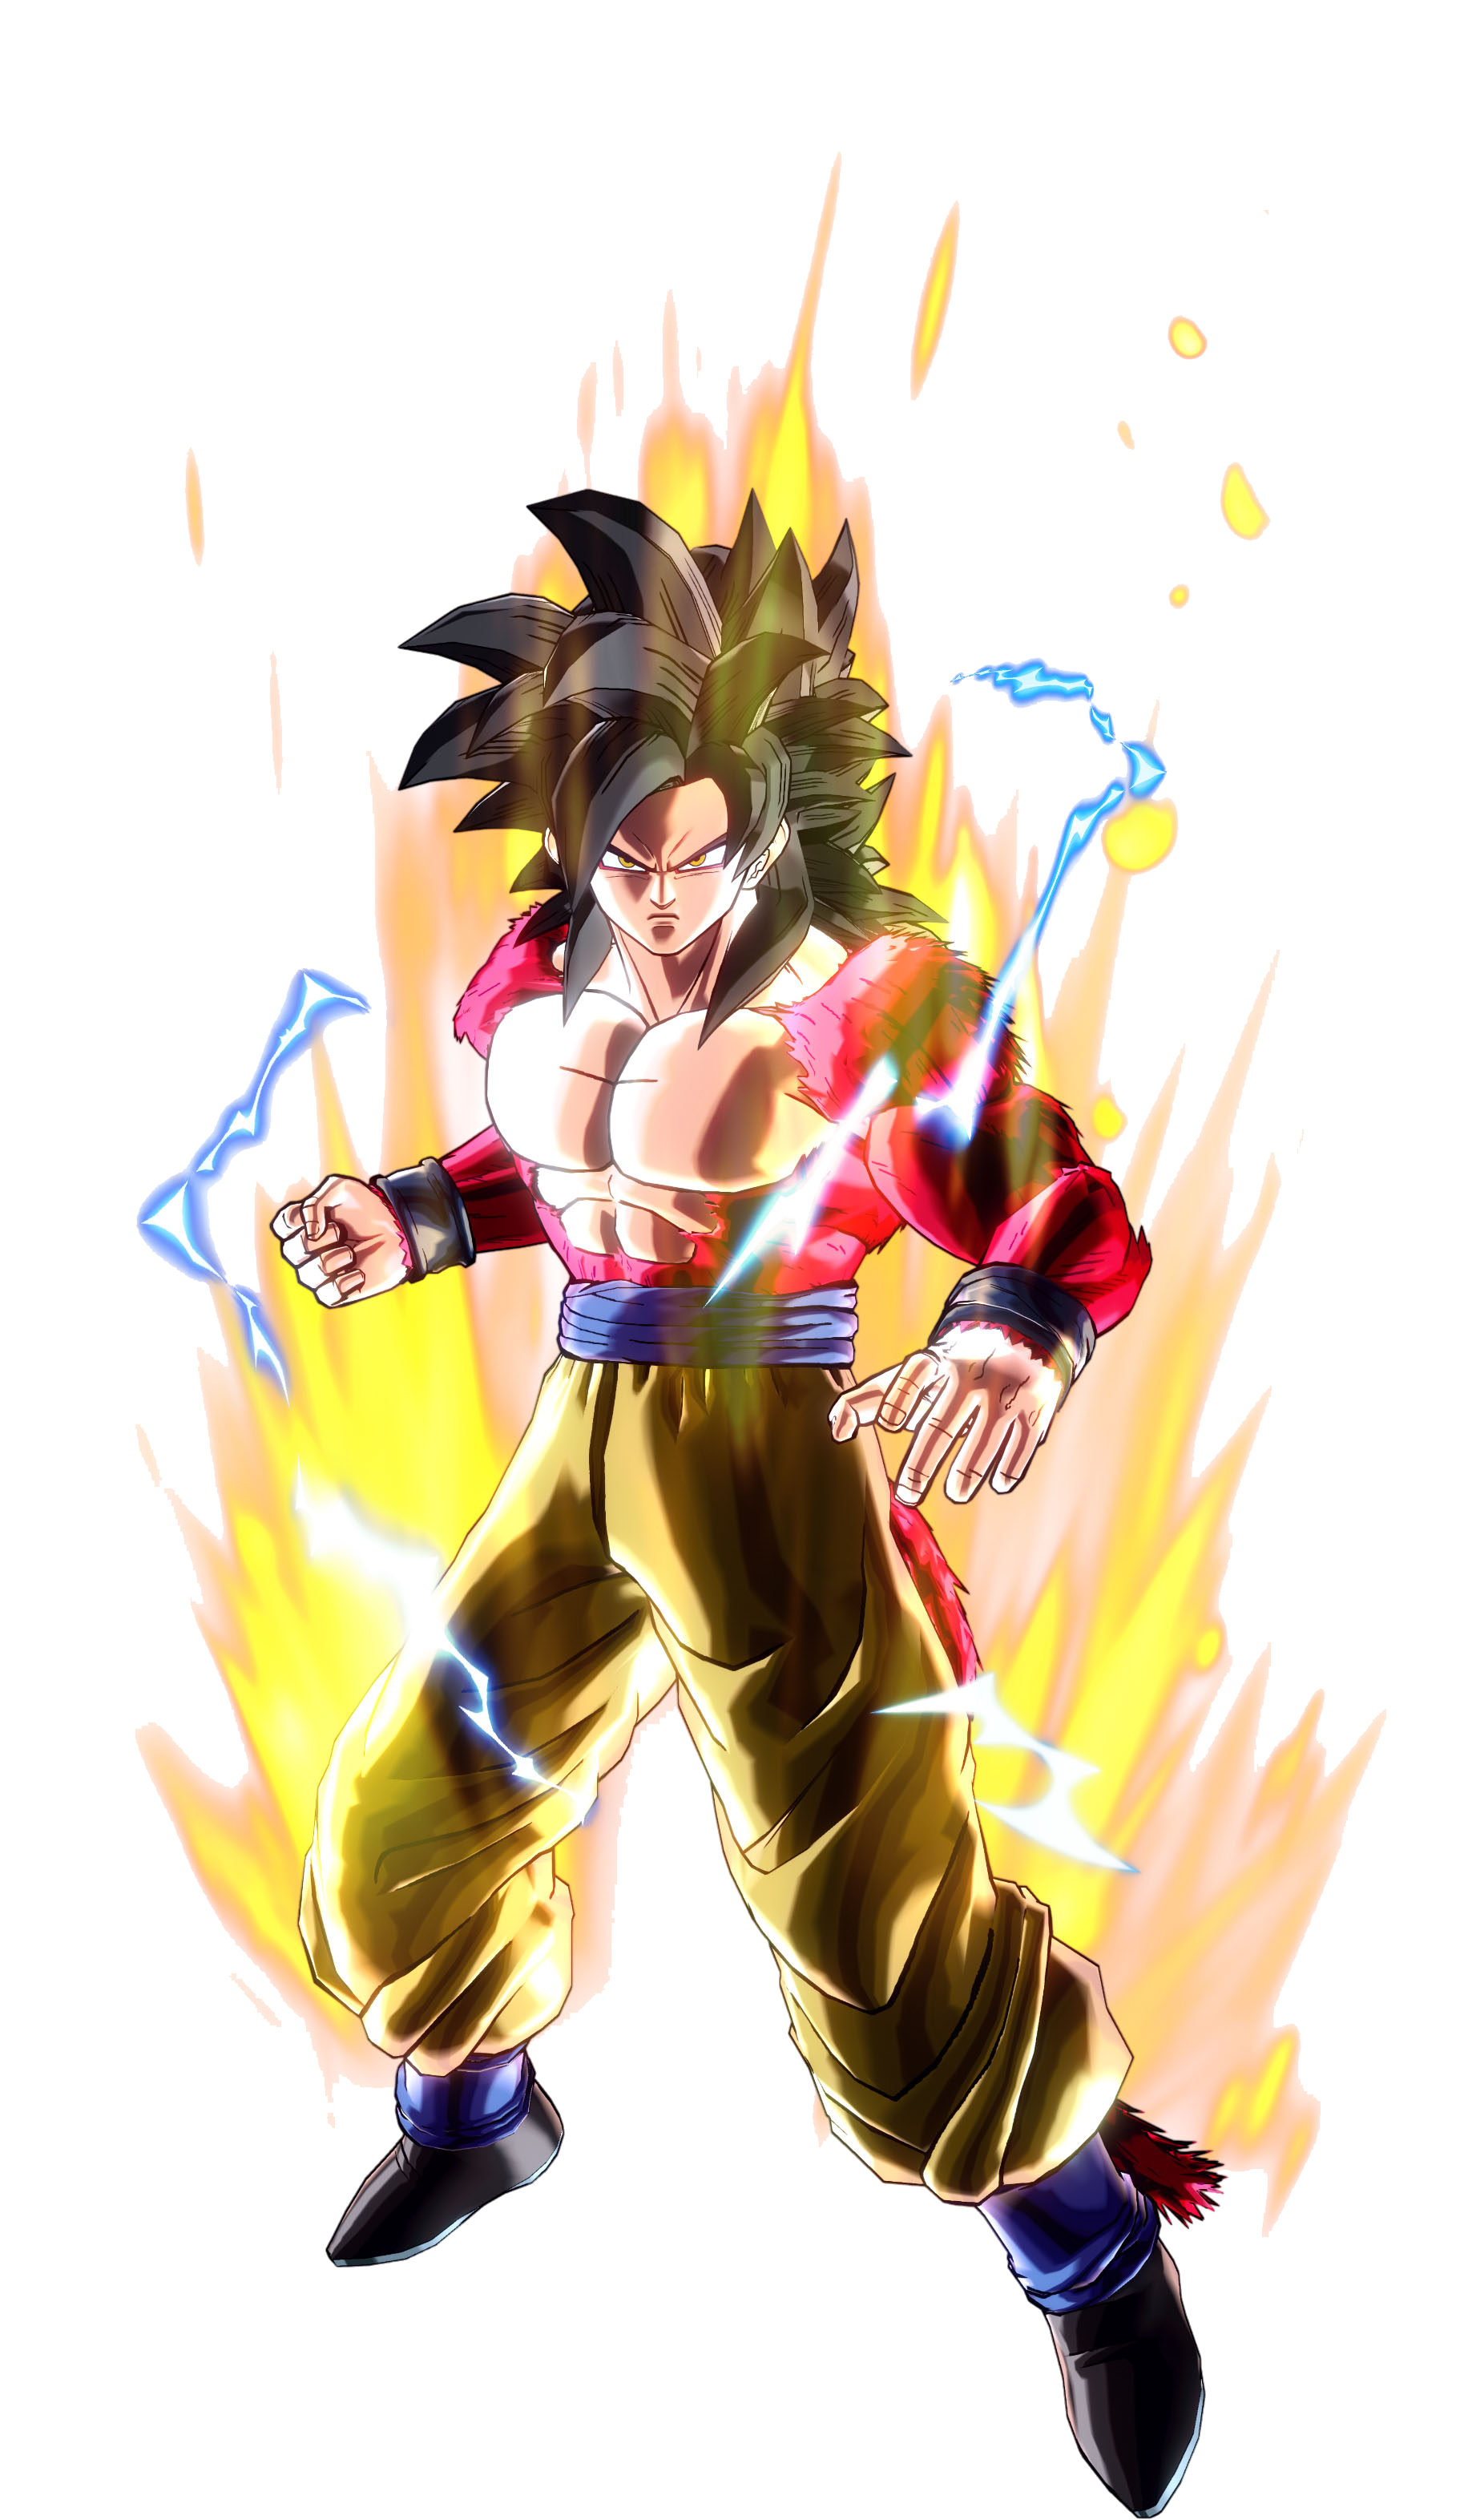 Goku Super Saiyan 4 Render (Dragon Ball Xenoverse).png